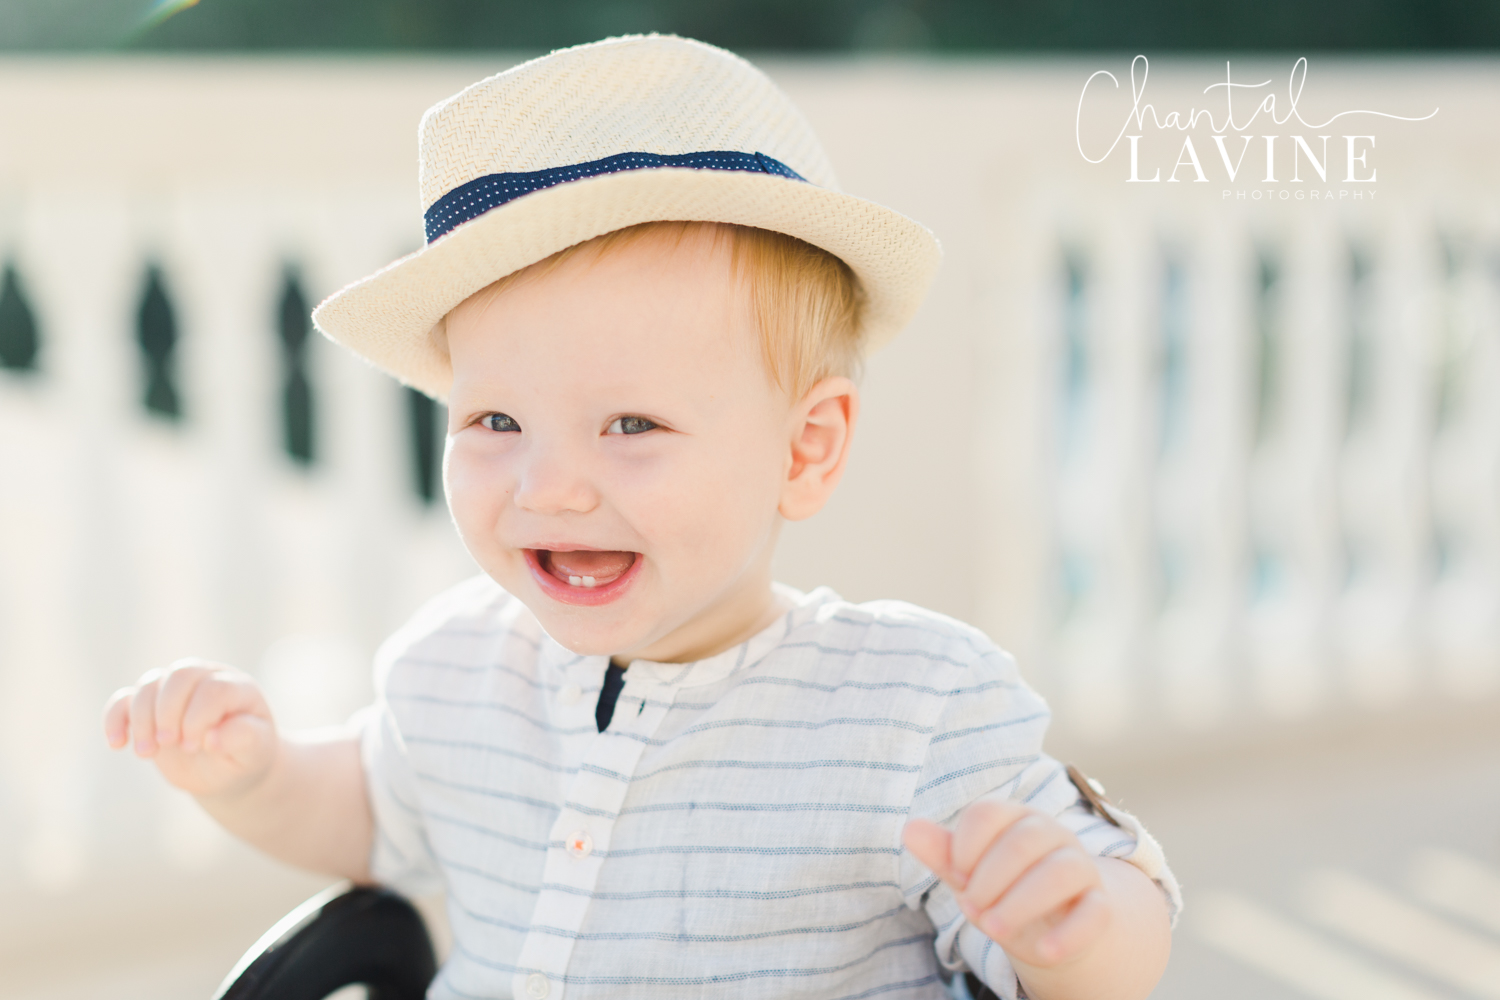 smiley-baby-in-fedora-bermuda